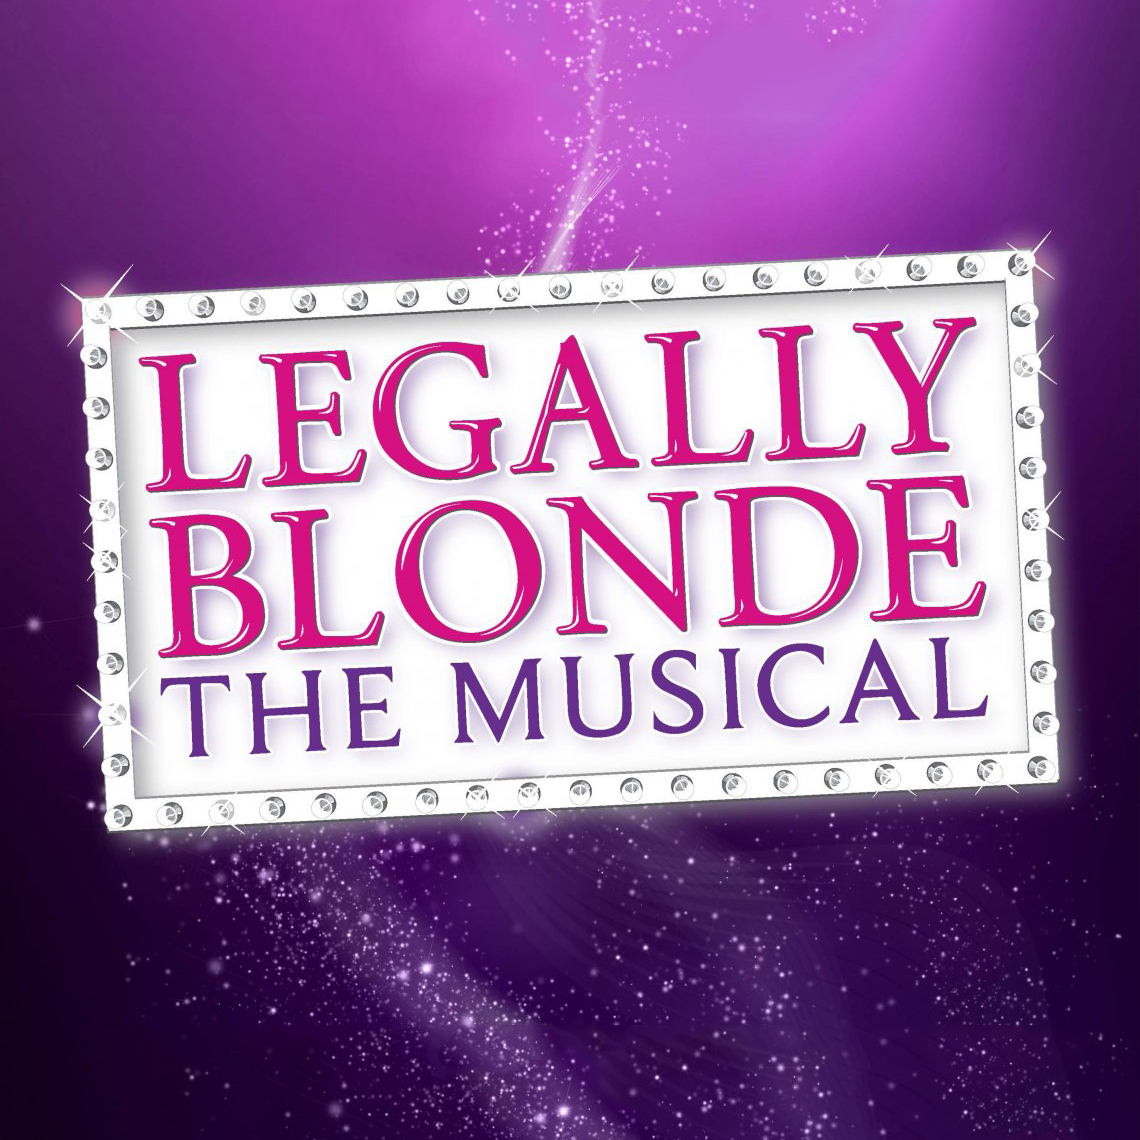 """Legally Blonde   The following is placeholder text known as """"lorem ipsum,"""" which is scrambled Latin used by designers to mimic real copy. Nulla eu pretium massa. Donec eget risus diam. Mauris id fermentum nulla. Suspendisse nec congue purus."""